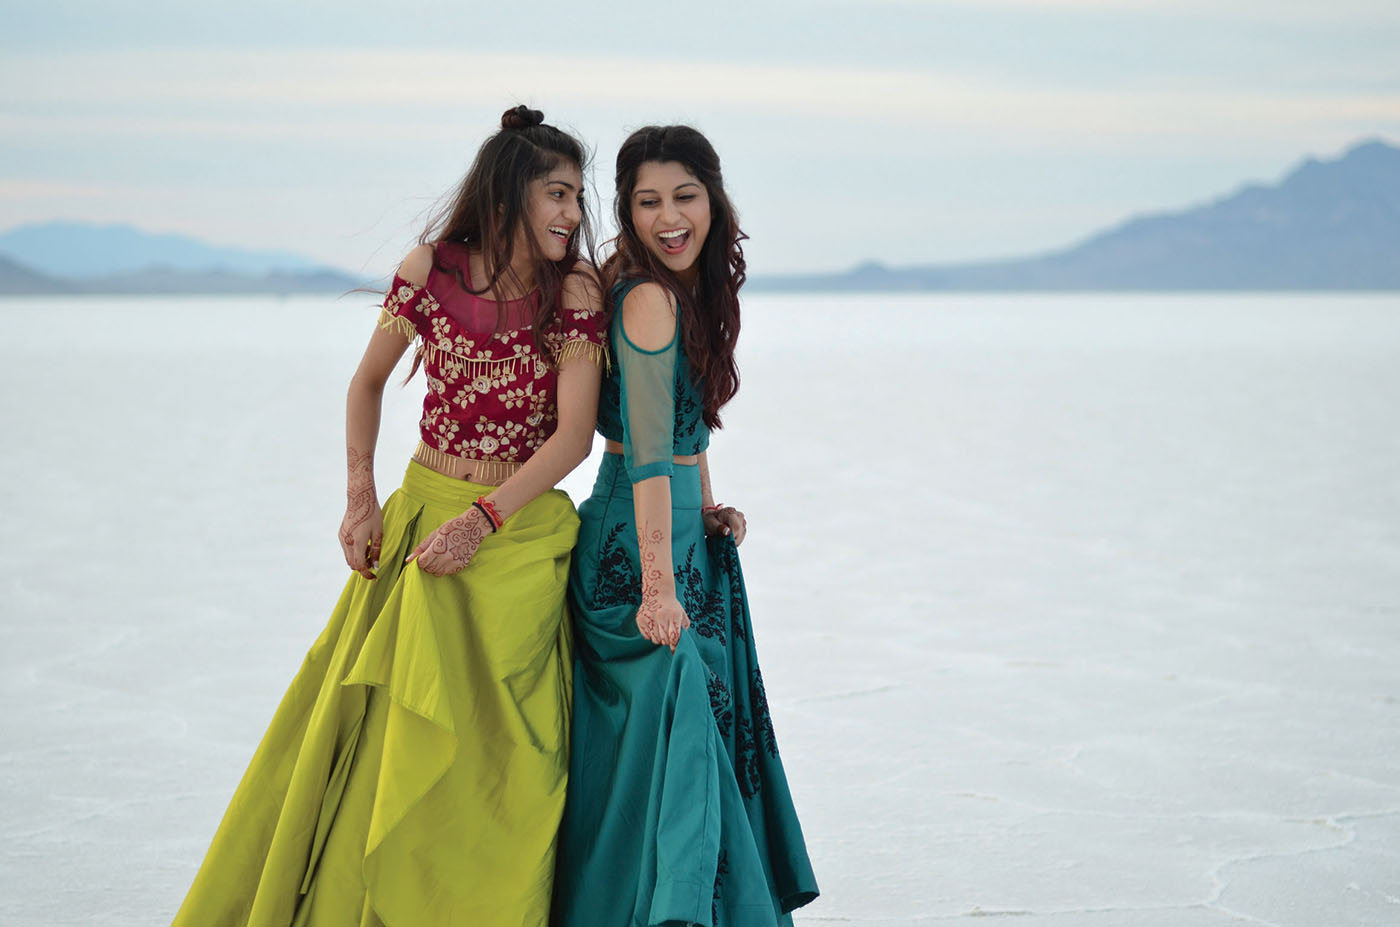 (L–R) Amishi and Aarushi Rohaj merge Western and Indian culture together through their Bollypop music stylings.